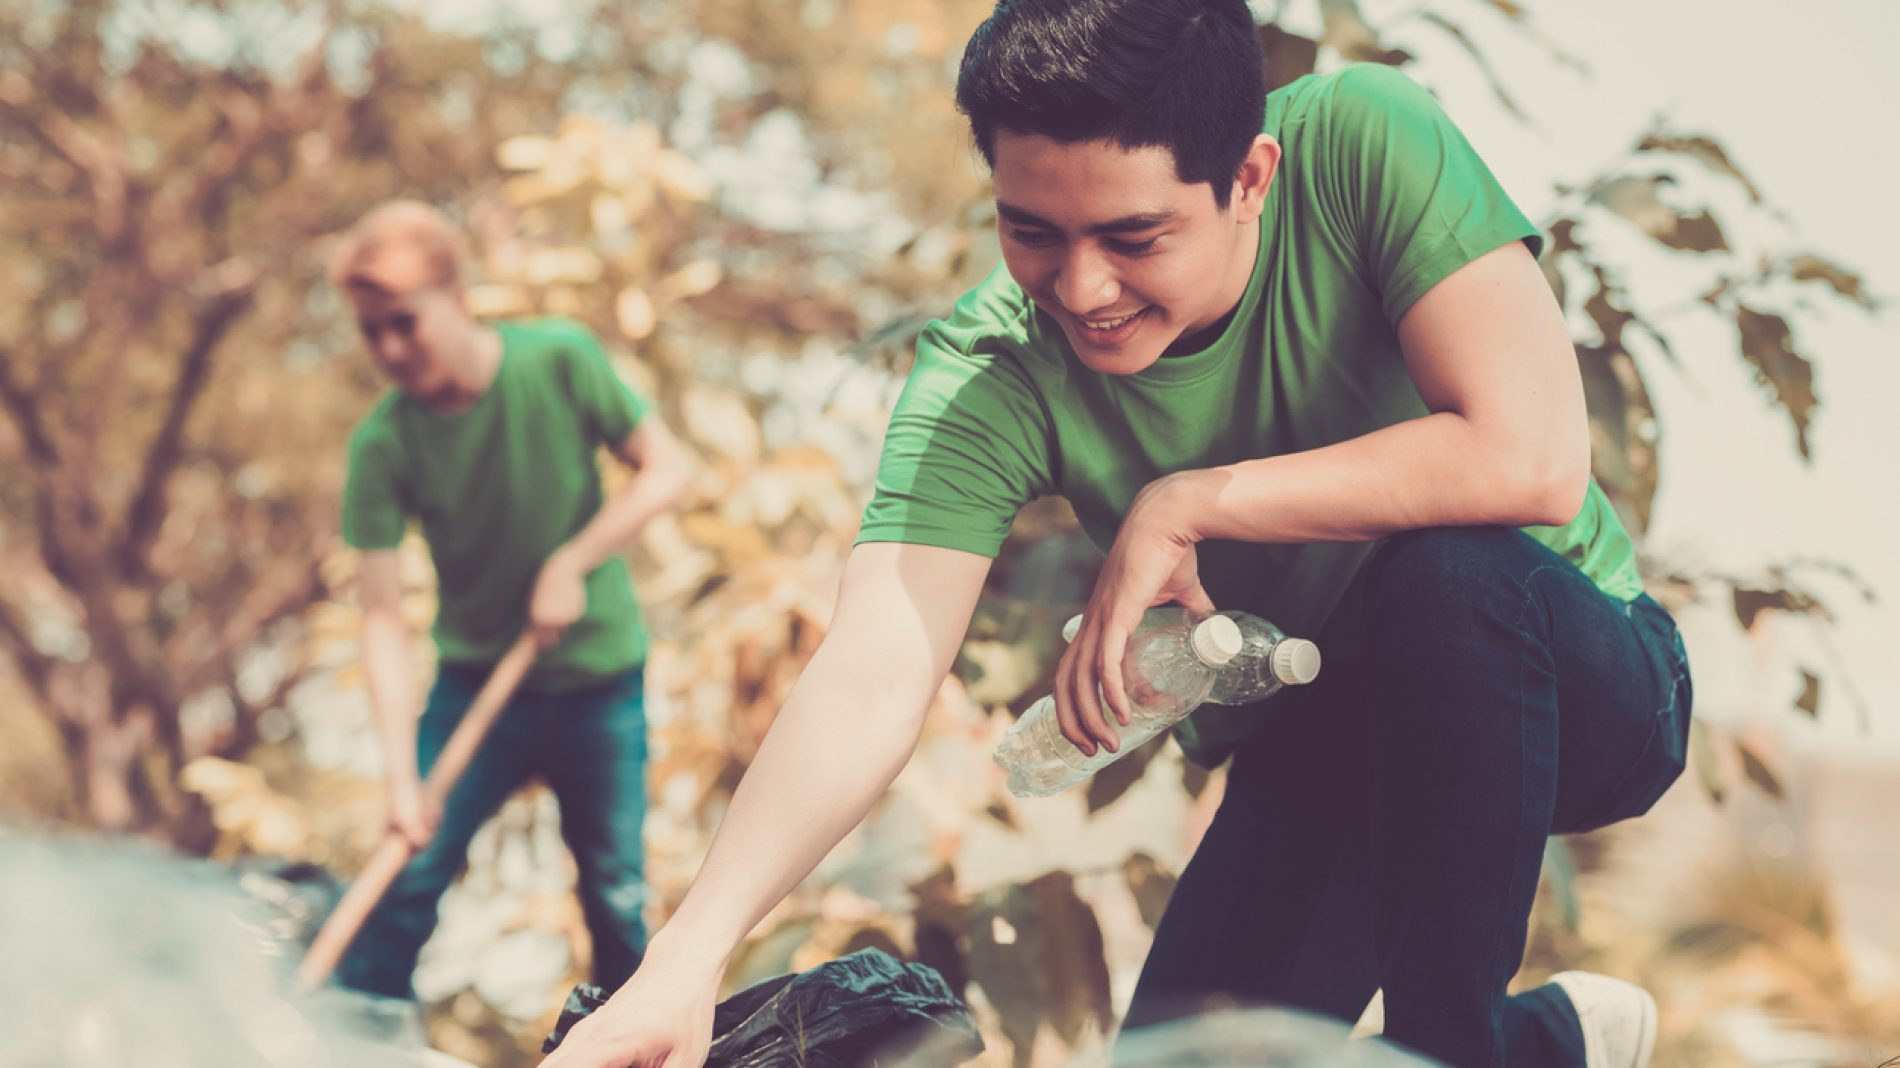 A young man picking up rubbish